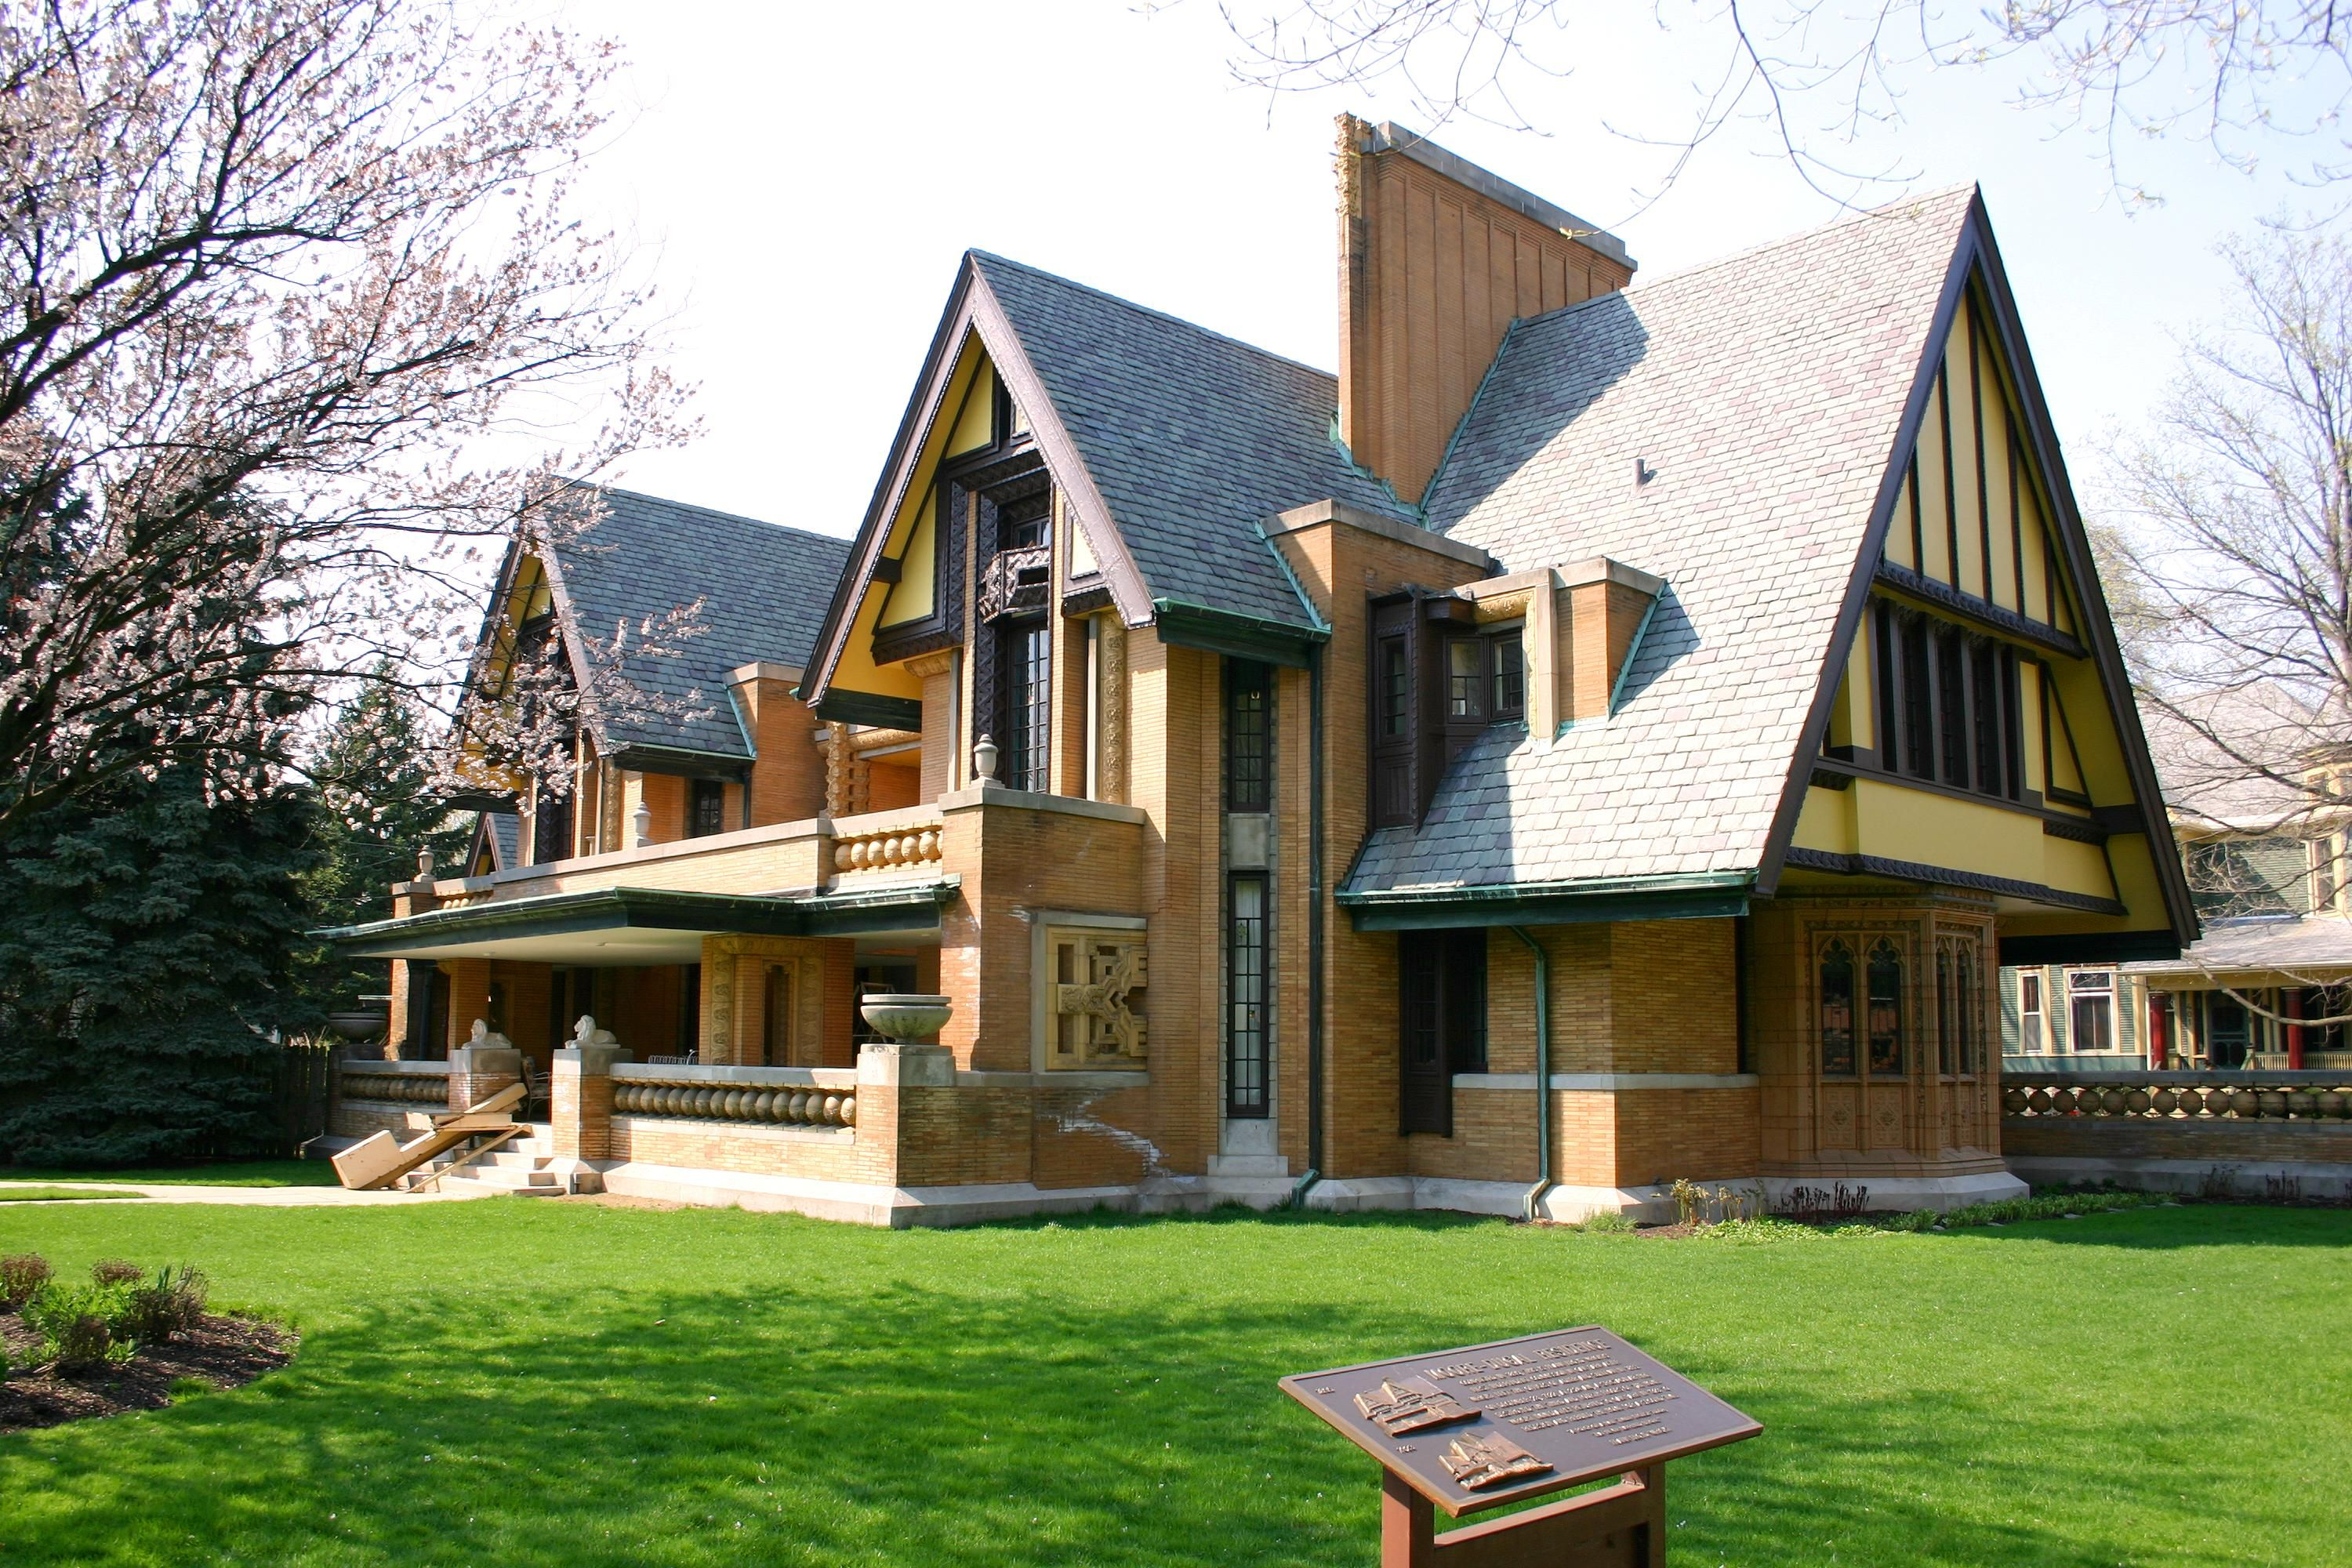 Frank Lloyd Wright Architectural Style arthur b heurtley house (frank lloyd wright 1902) oak park